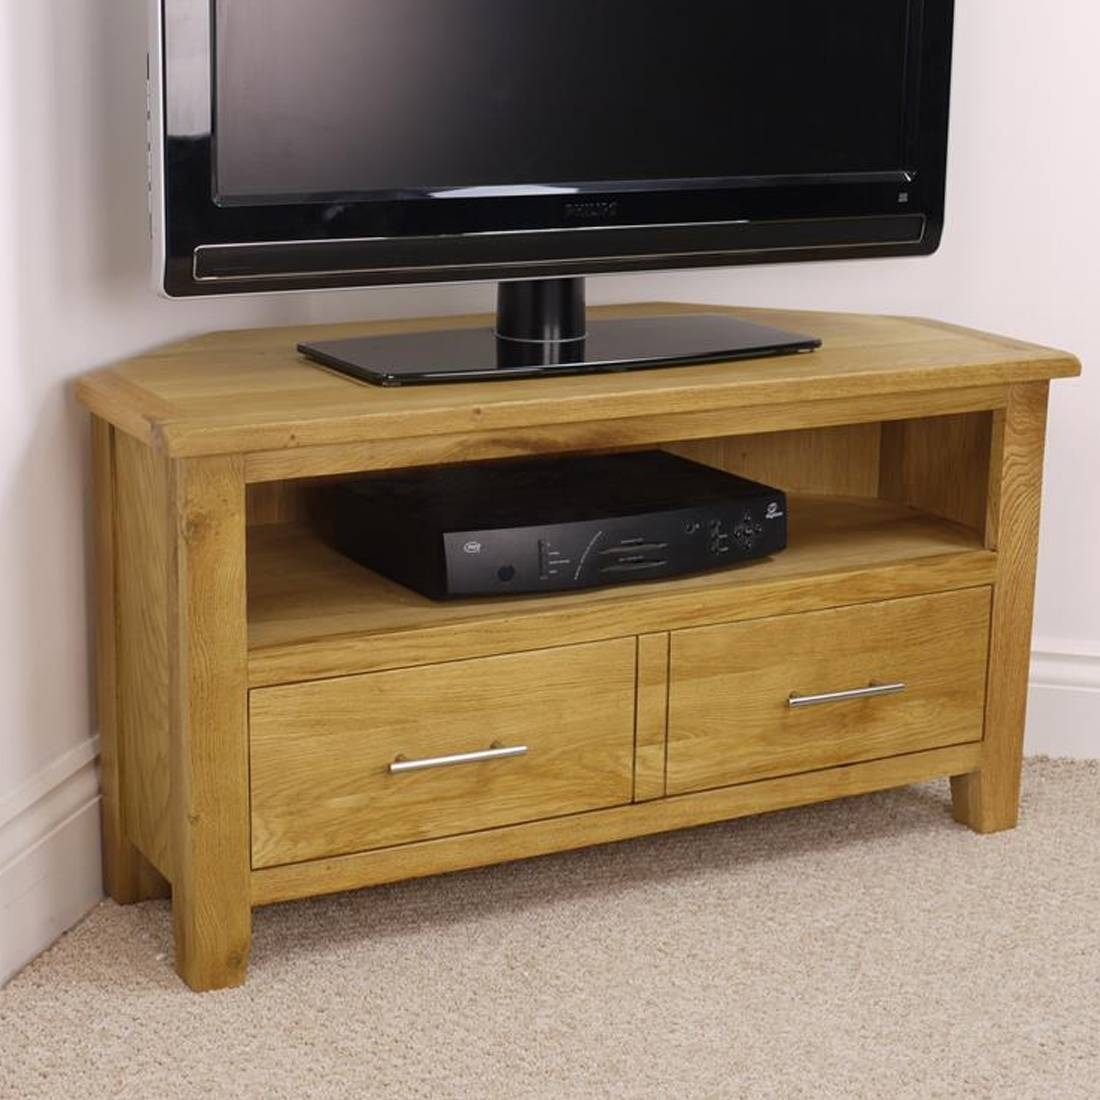 Oak Tv And Entertainment Stands | Ebay throughout Corner Oak Tv Stands for Flat Screen (Image 3 of 15)